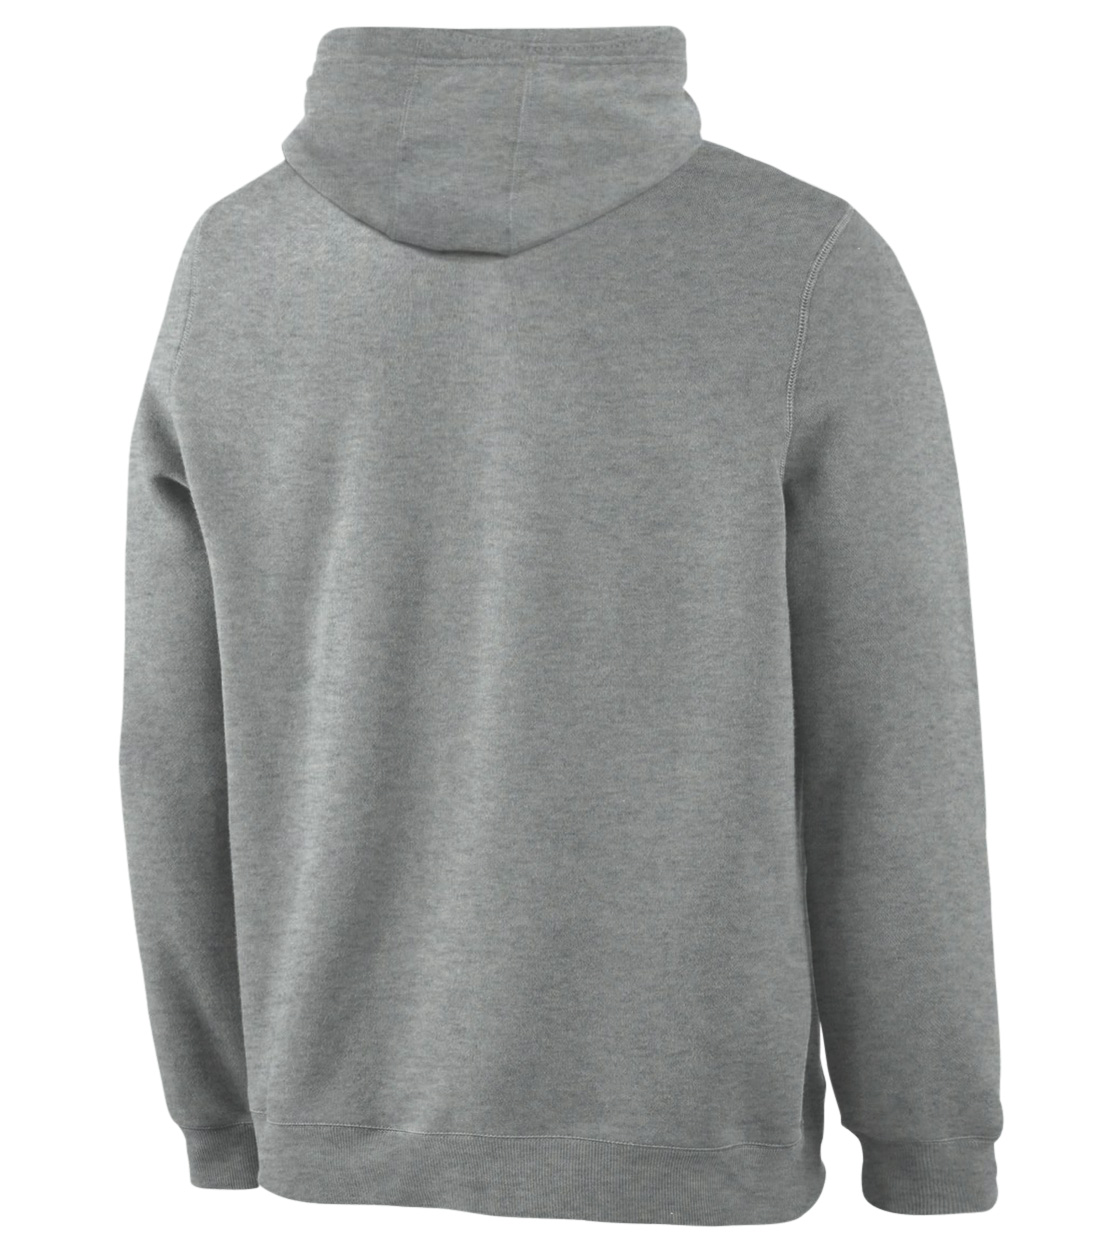 Miami Heat Vice City Hoodie (Wade) (HD-grey-148-PLYR-MIA-WADE.JRSY)